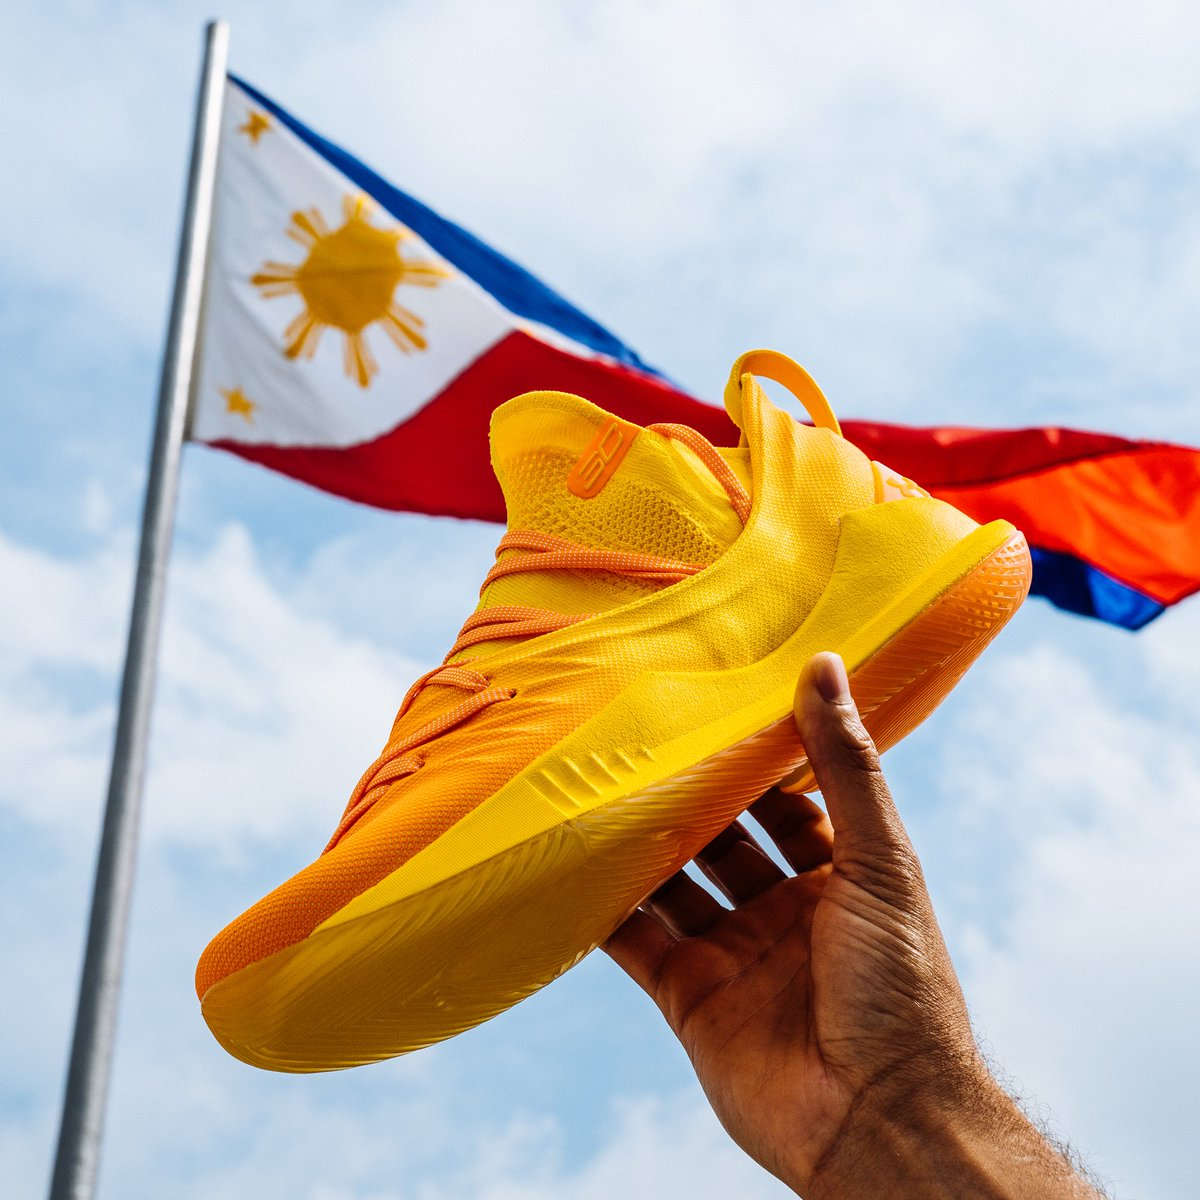 24642455fd2 ... this new yellow  Curry 5 in Manila for those Pinoy basketball players  who are  WiredDifferent to rewrite the code of the  game.pic.twitter.com n3yCGDGJed